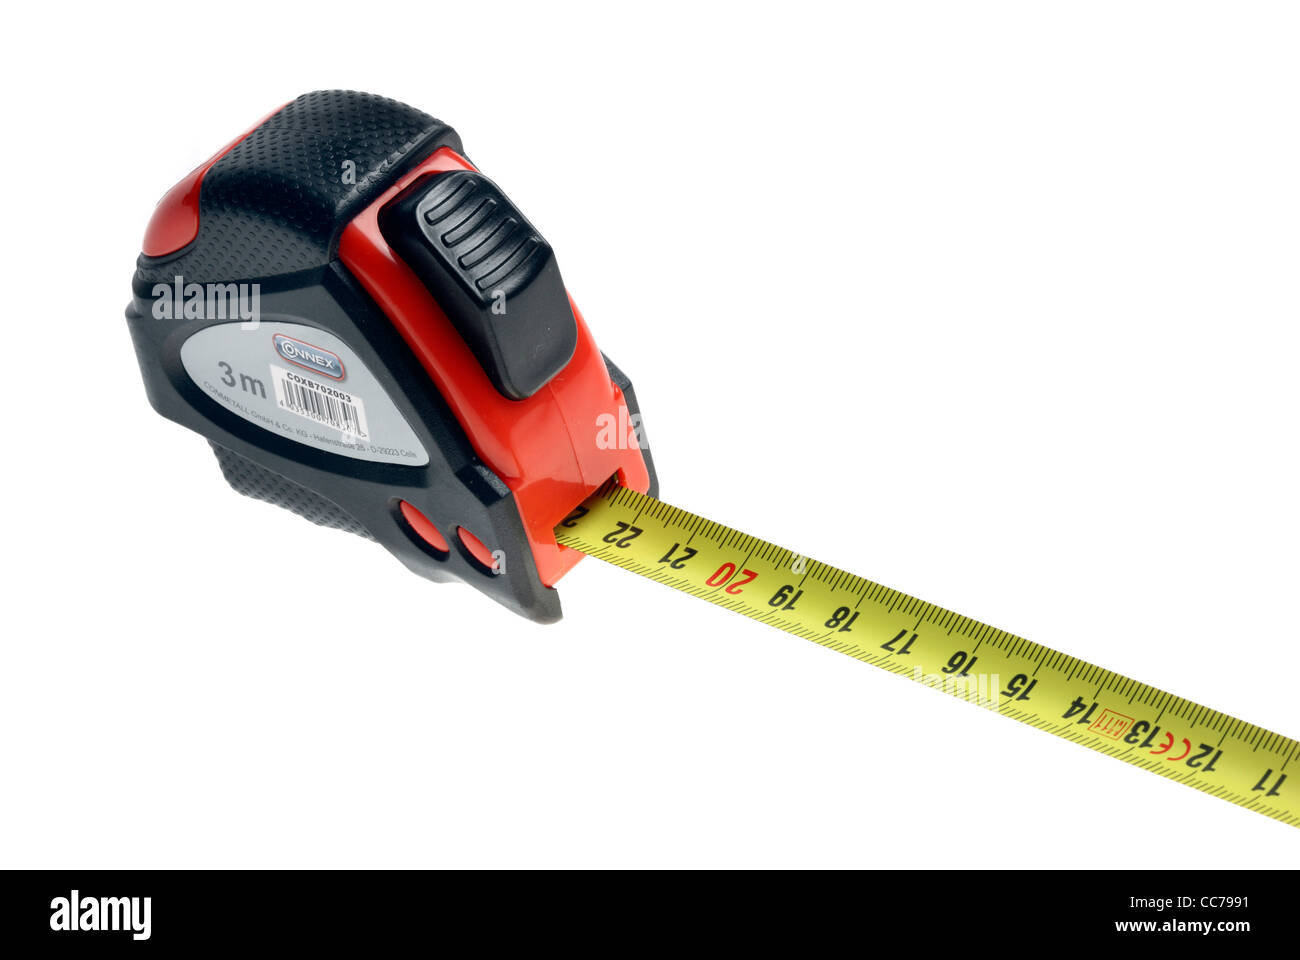 Measuring tape, rollable, tool. - Stock Image